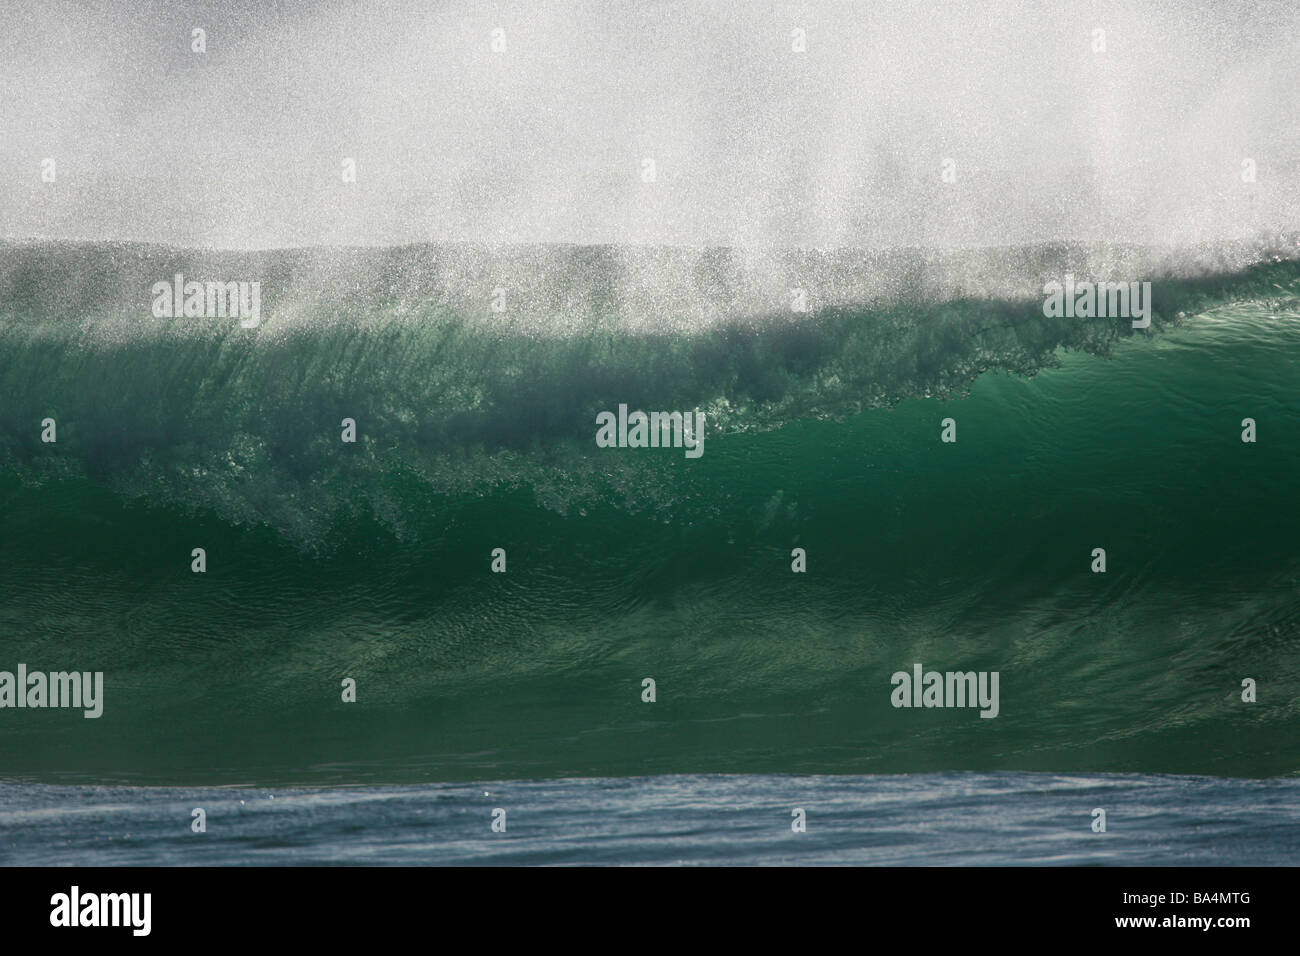 A Breaking Wave. - Stock Image